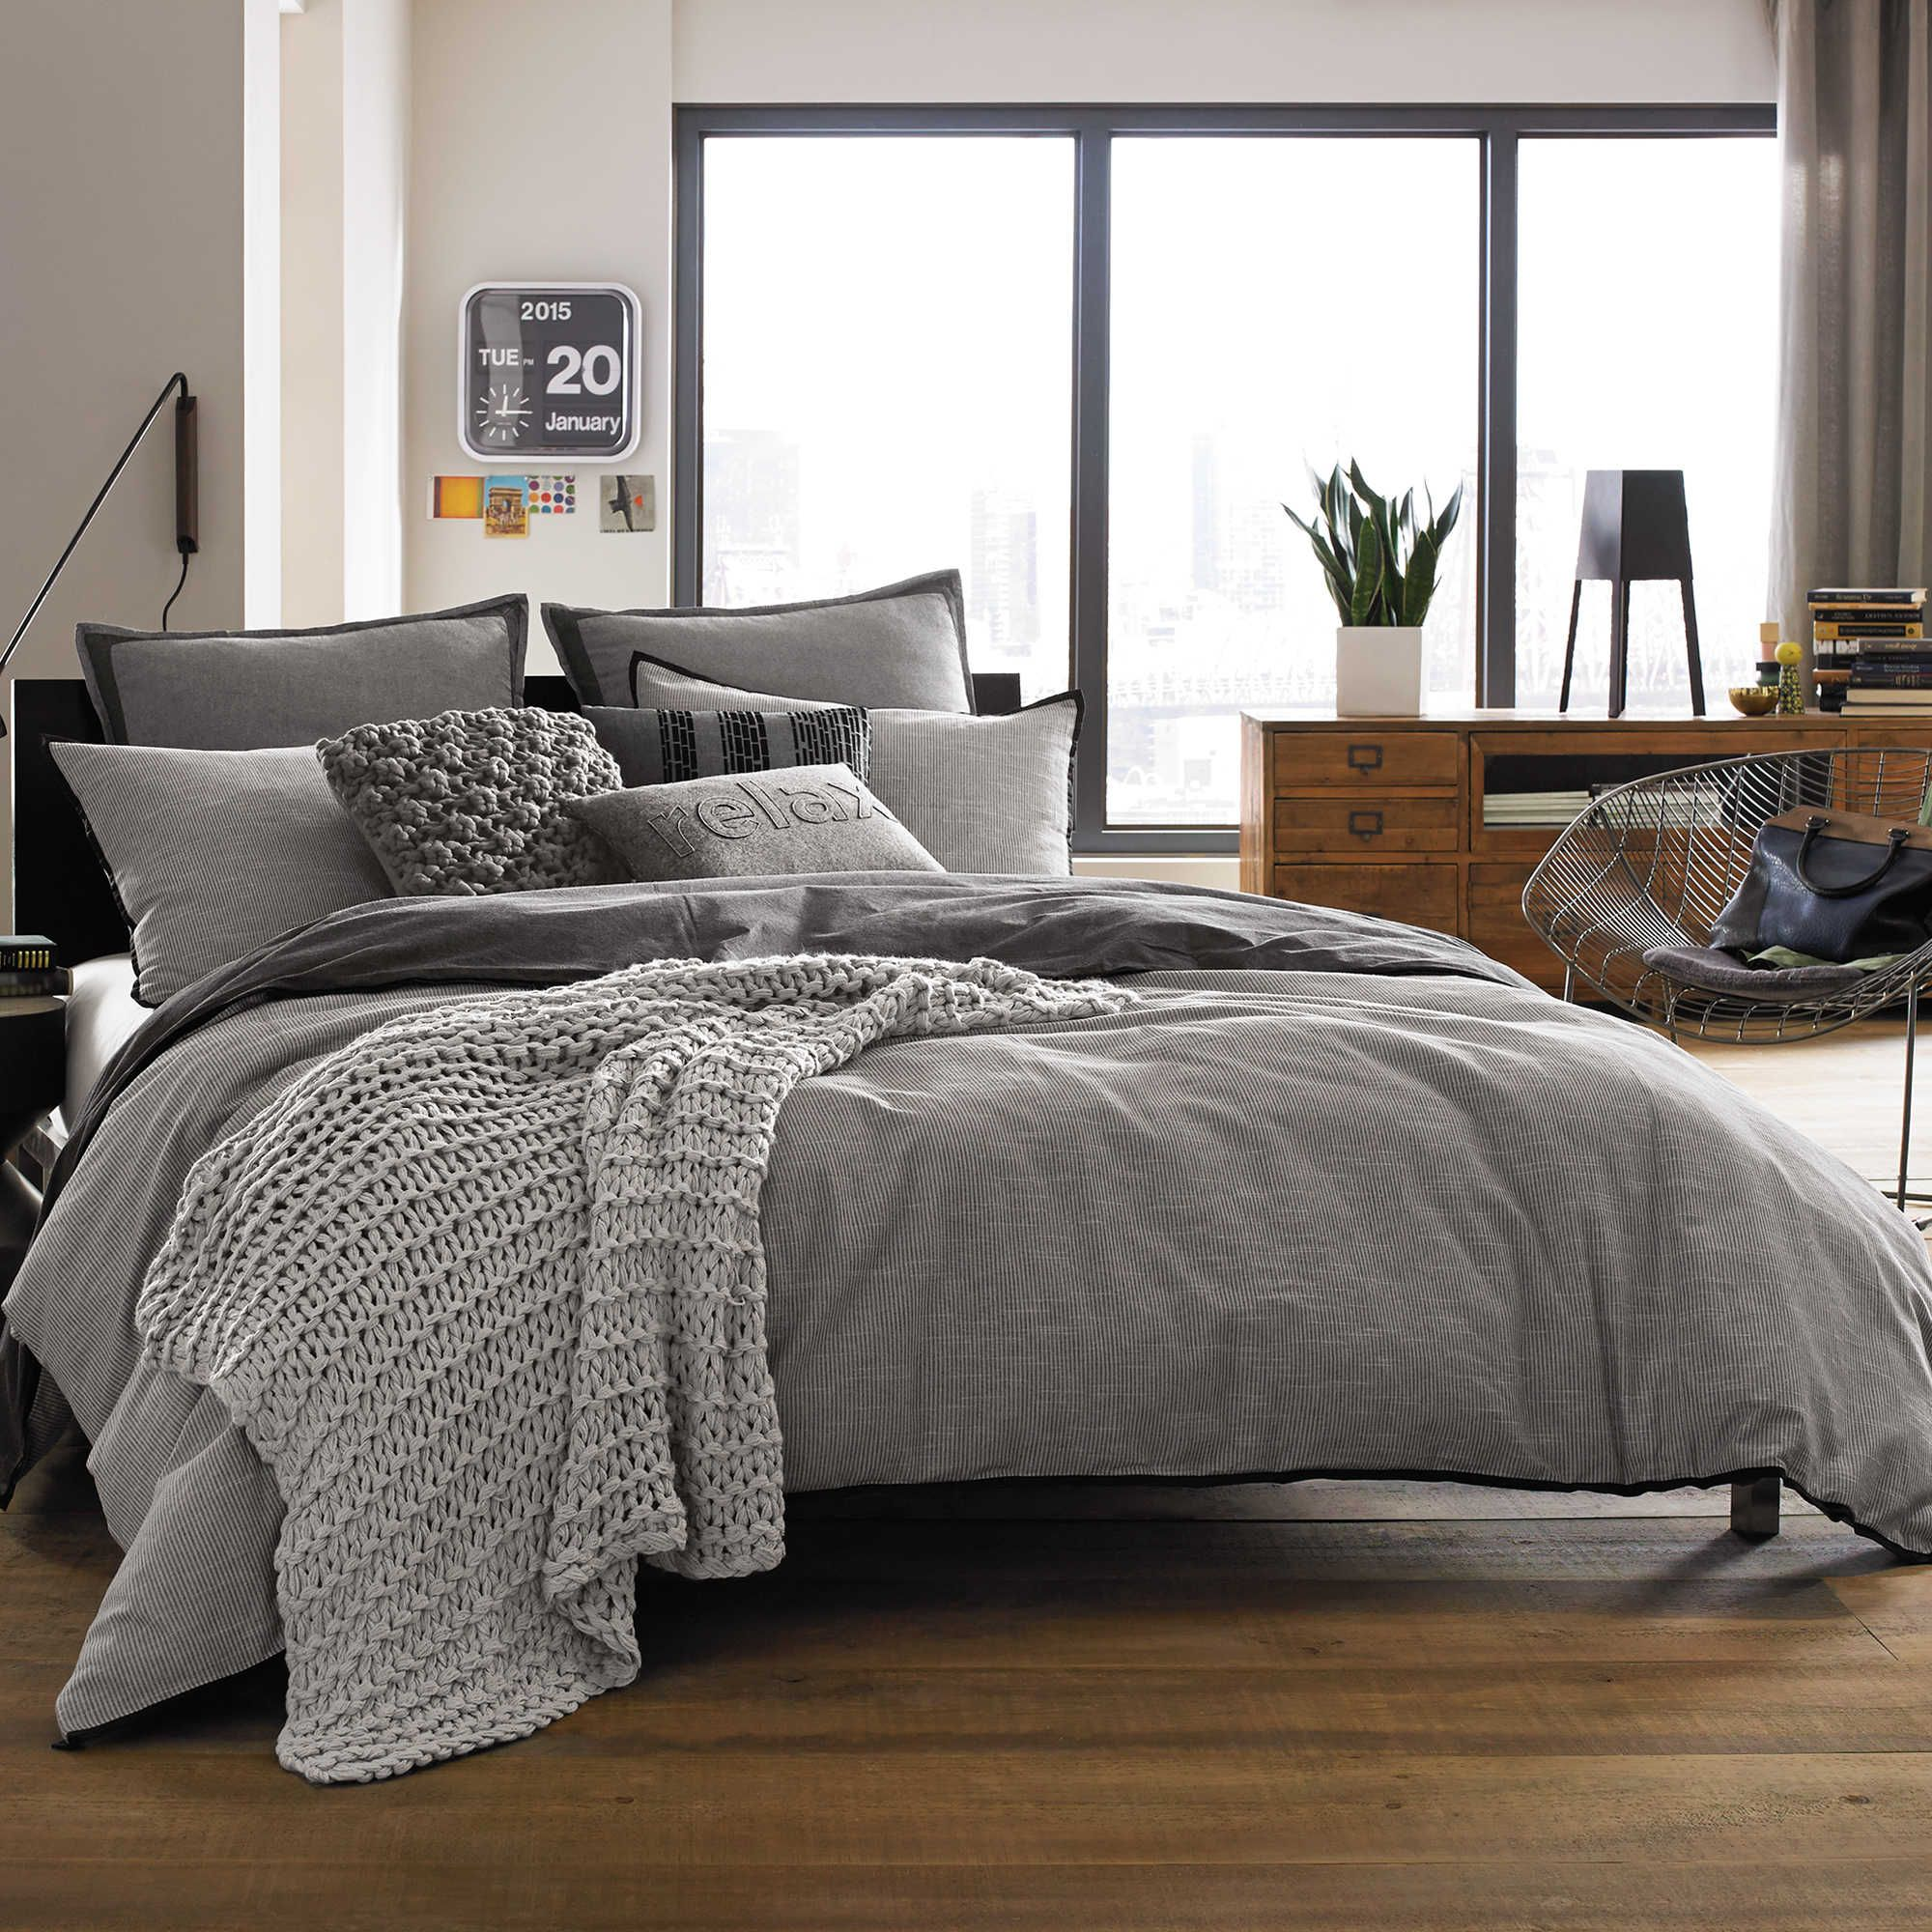 Kenneth Cole Reaction Home Oxford Comforter In Grey Stripe Bed